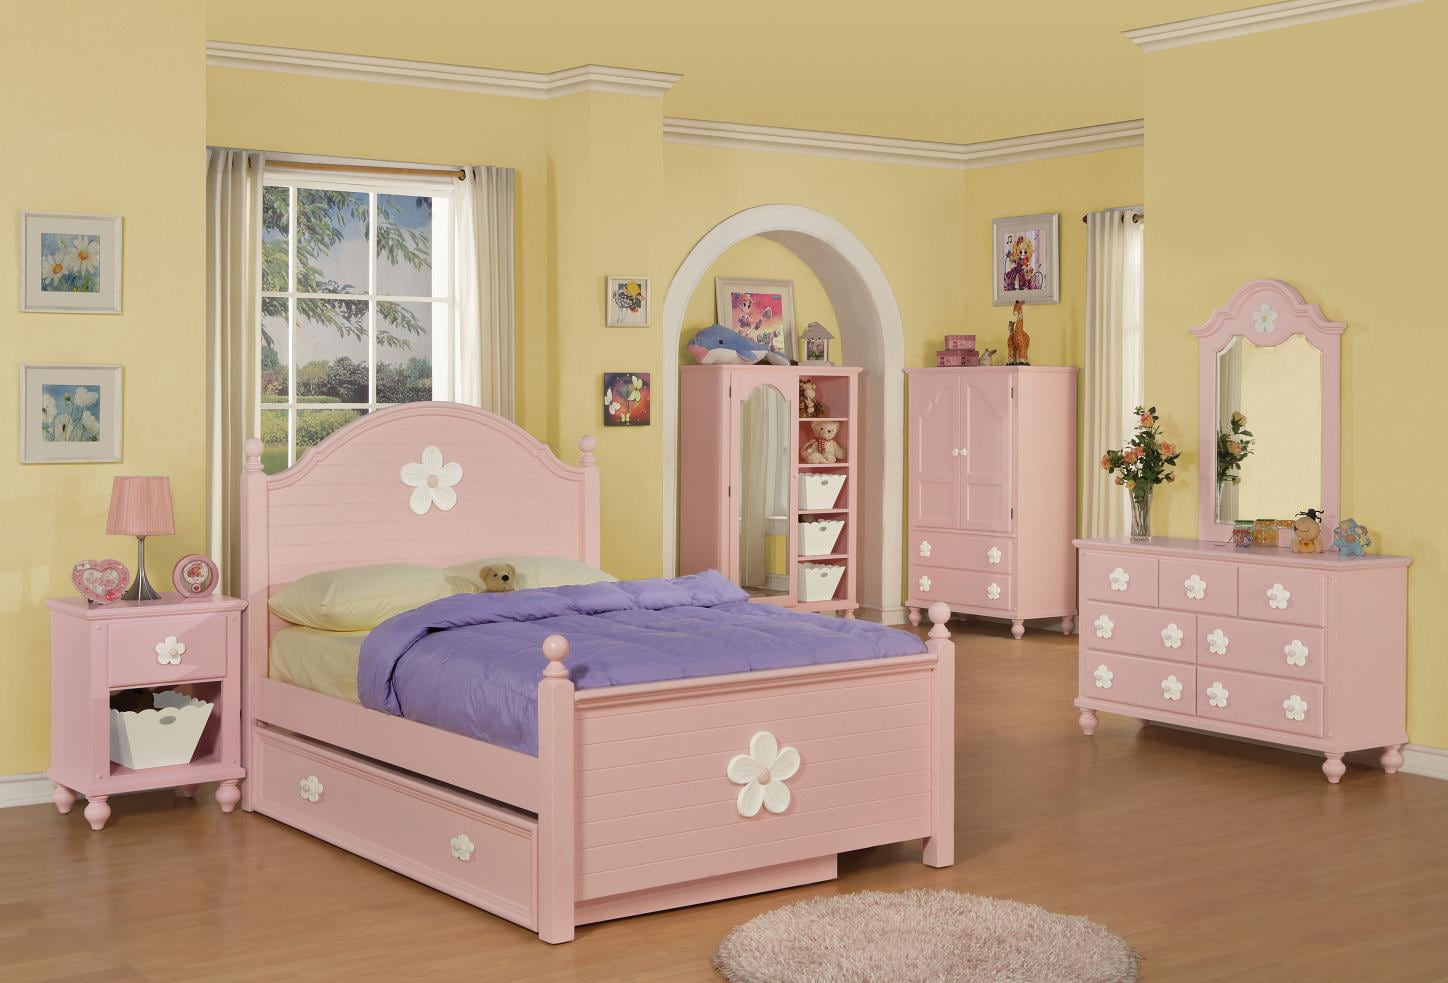 white and pink flower twin size bed free shipping today overstock